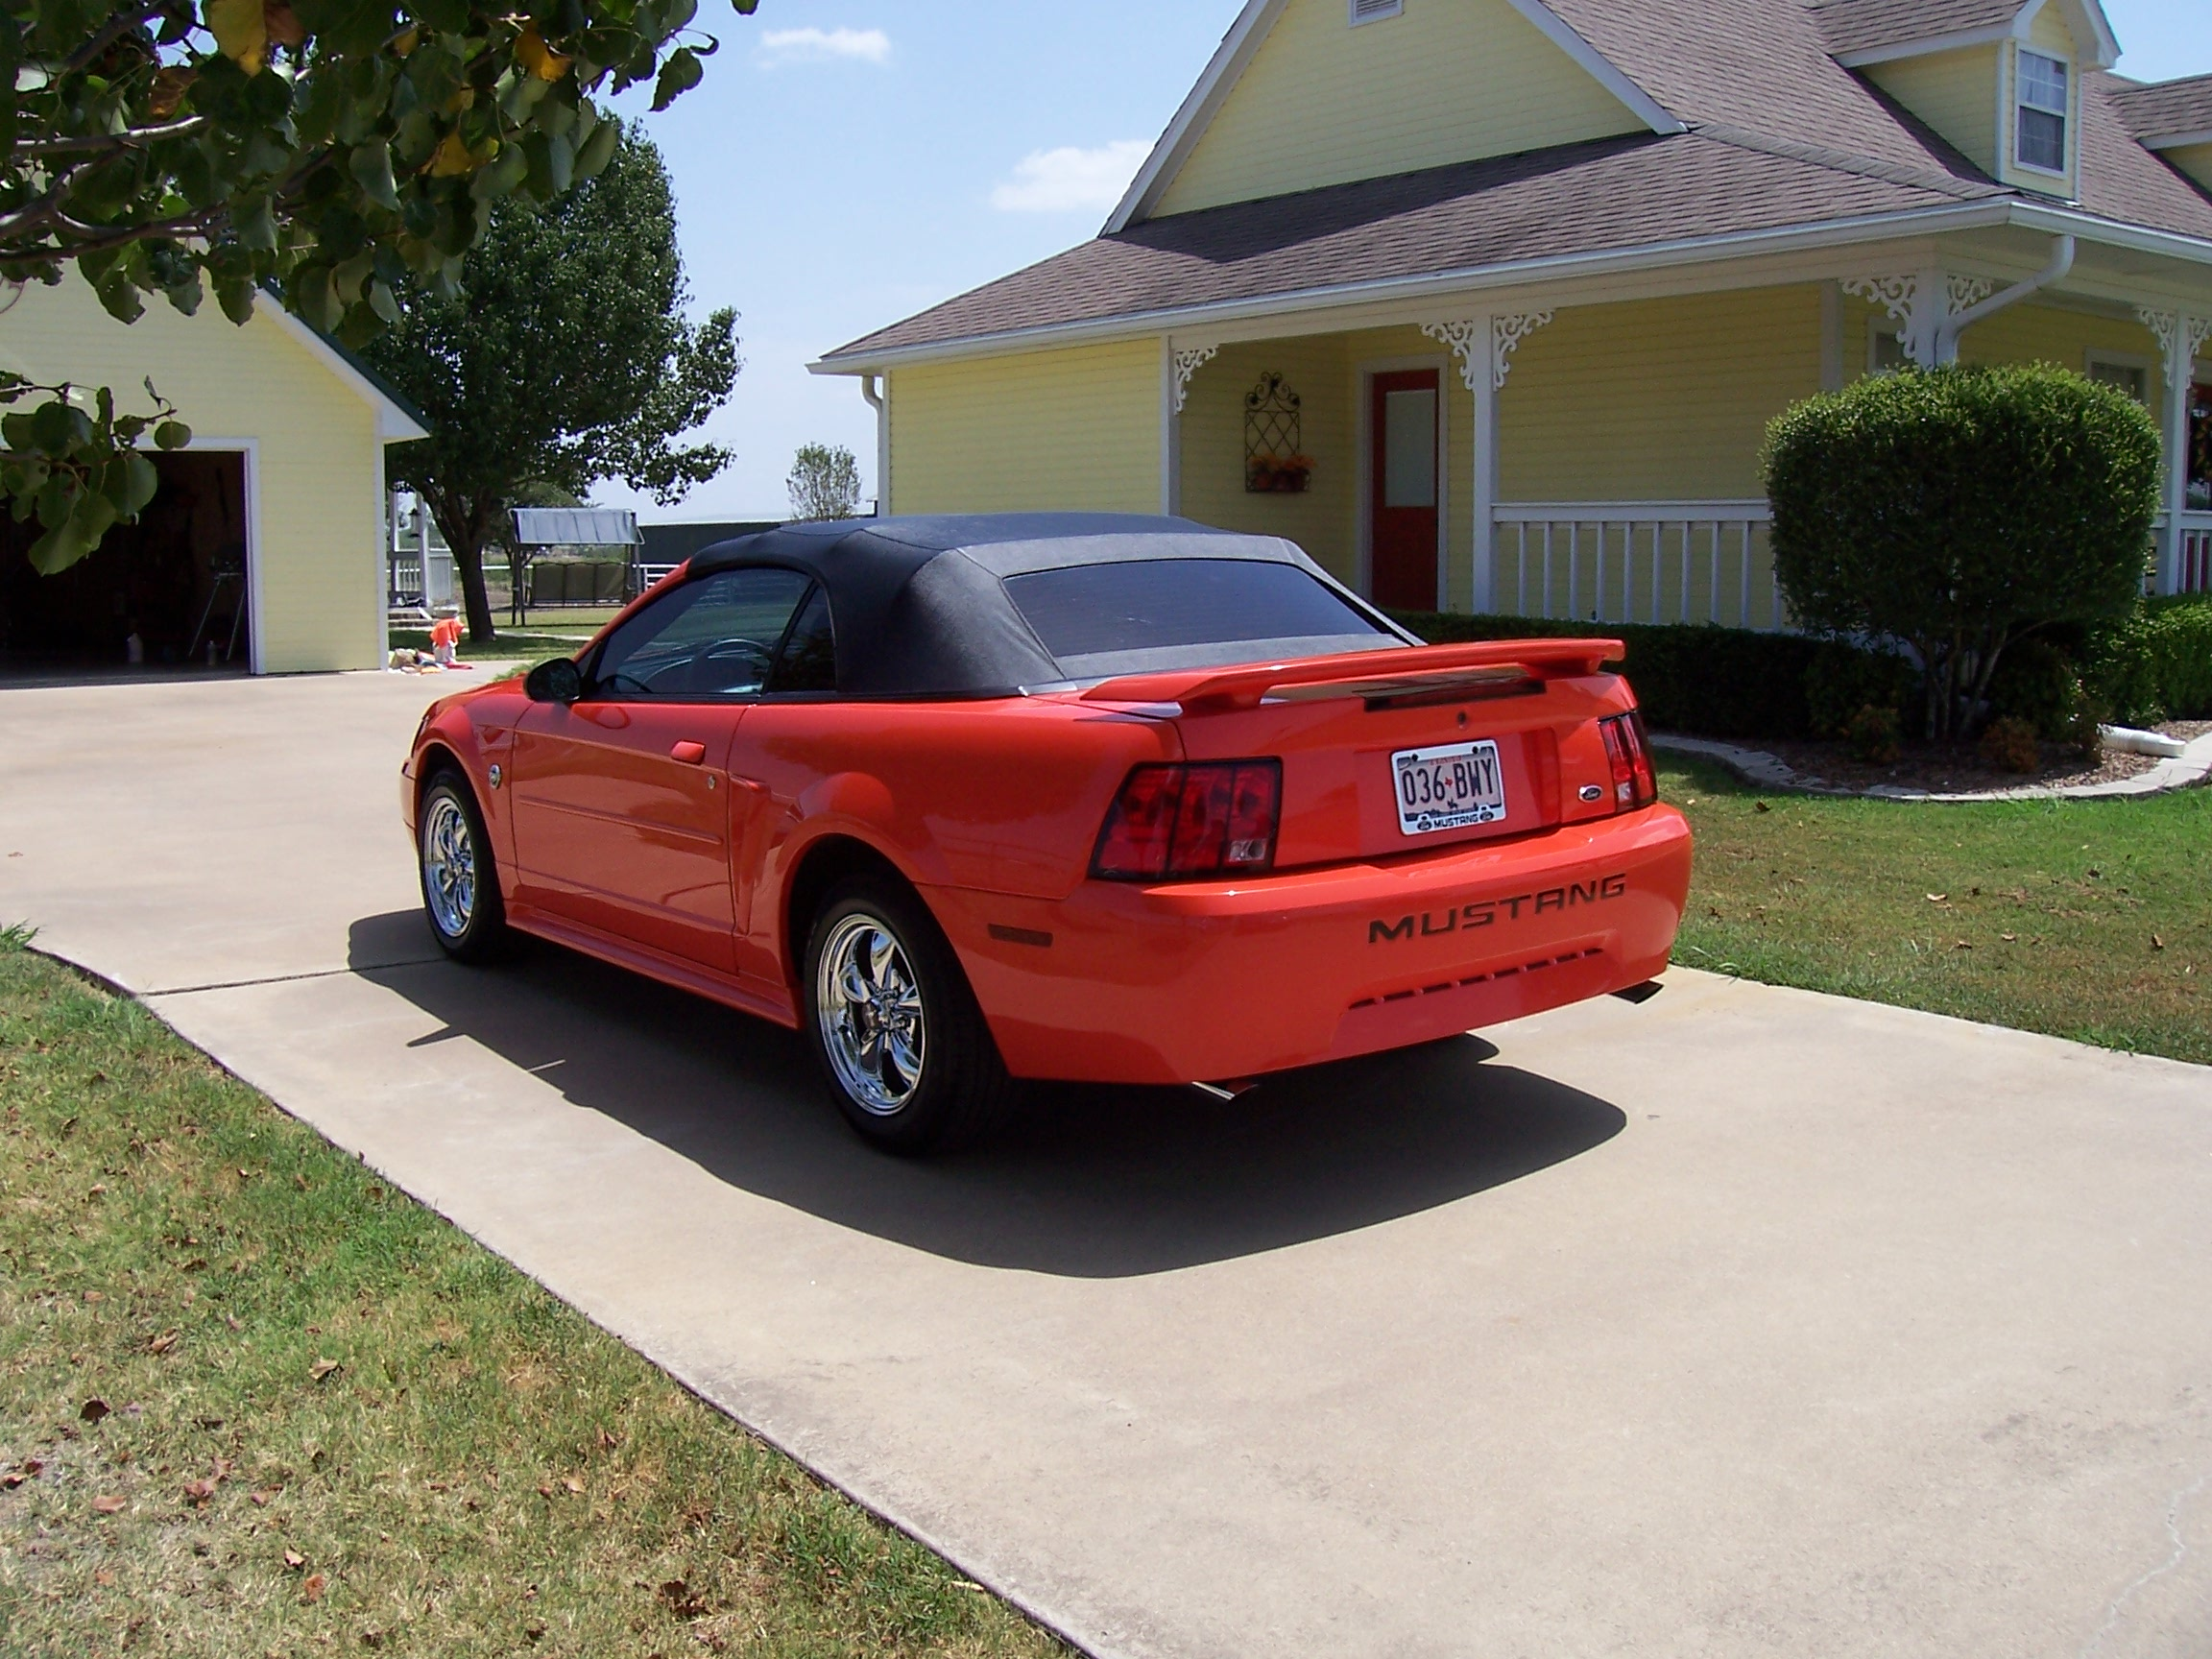 2004 Compettion orange Mustang